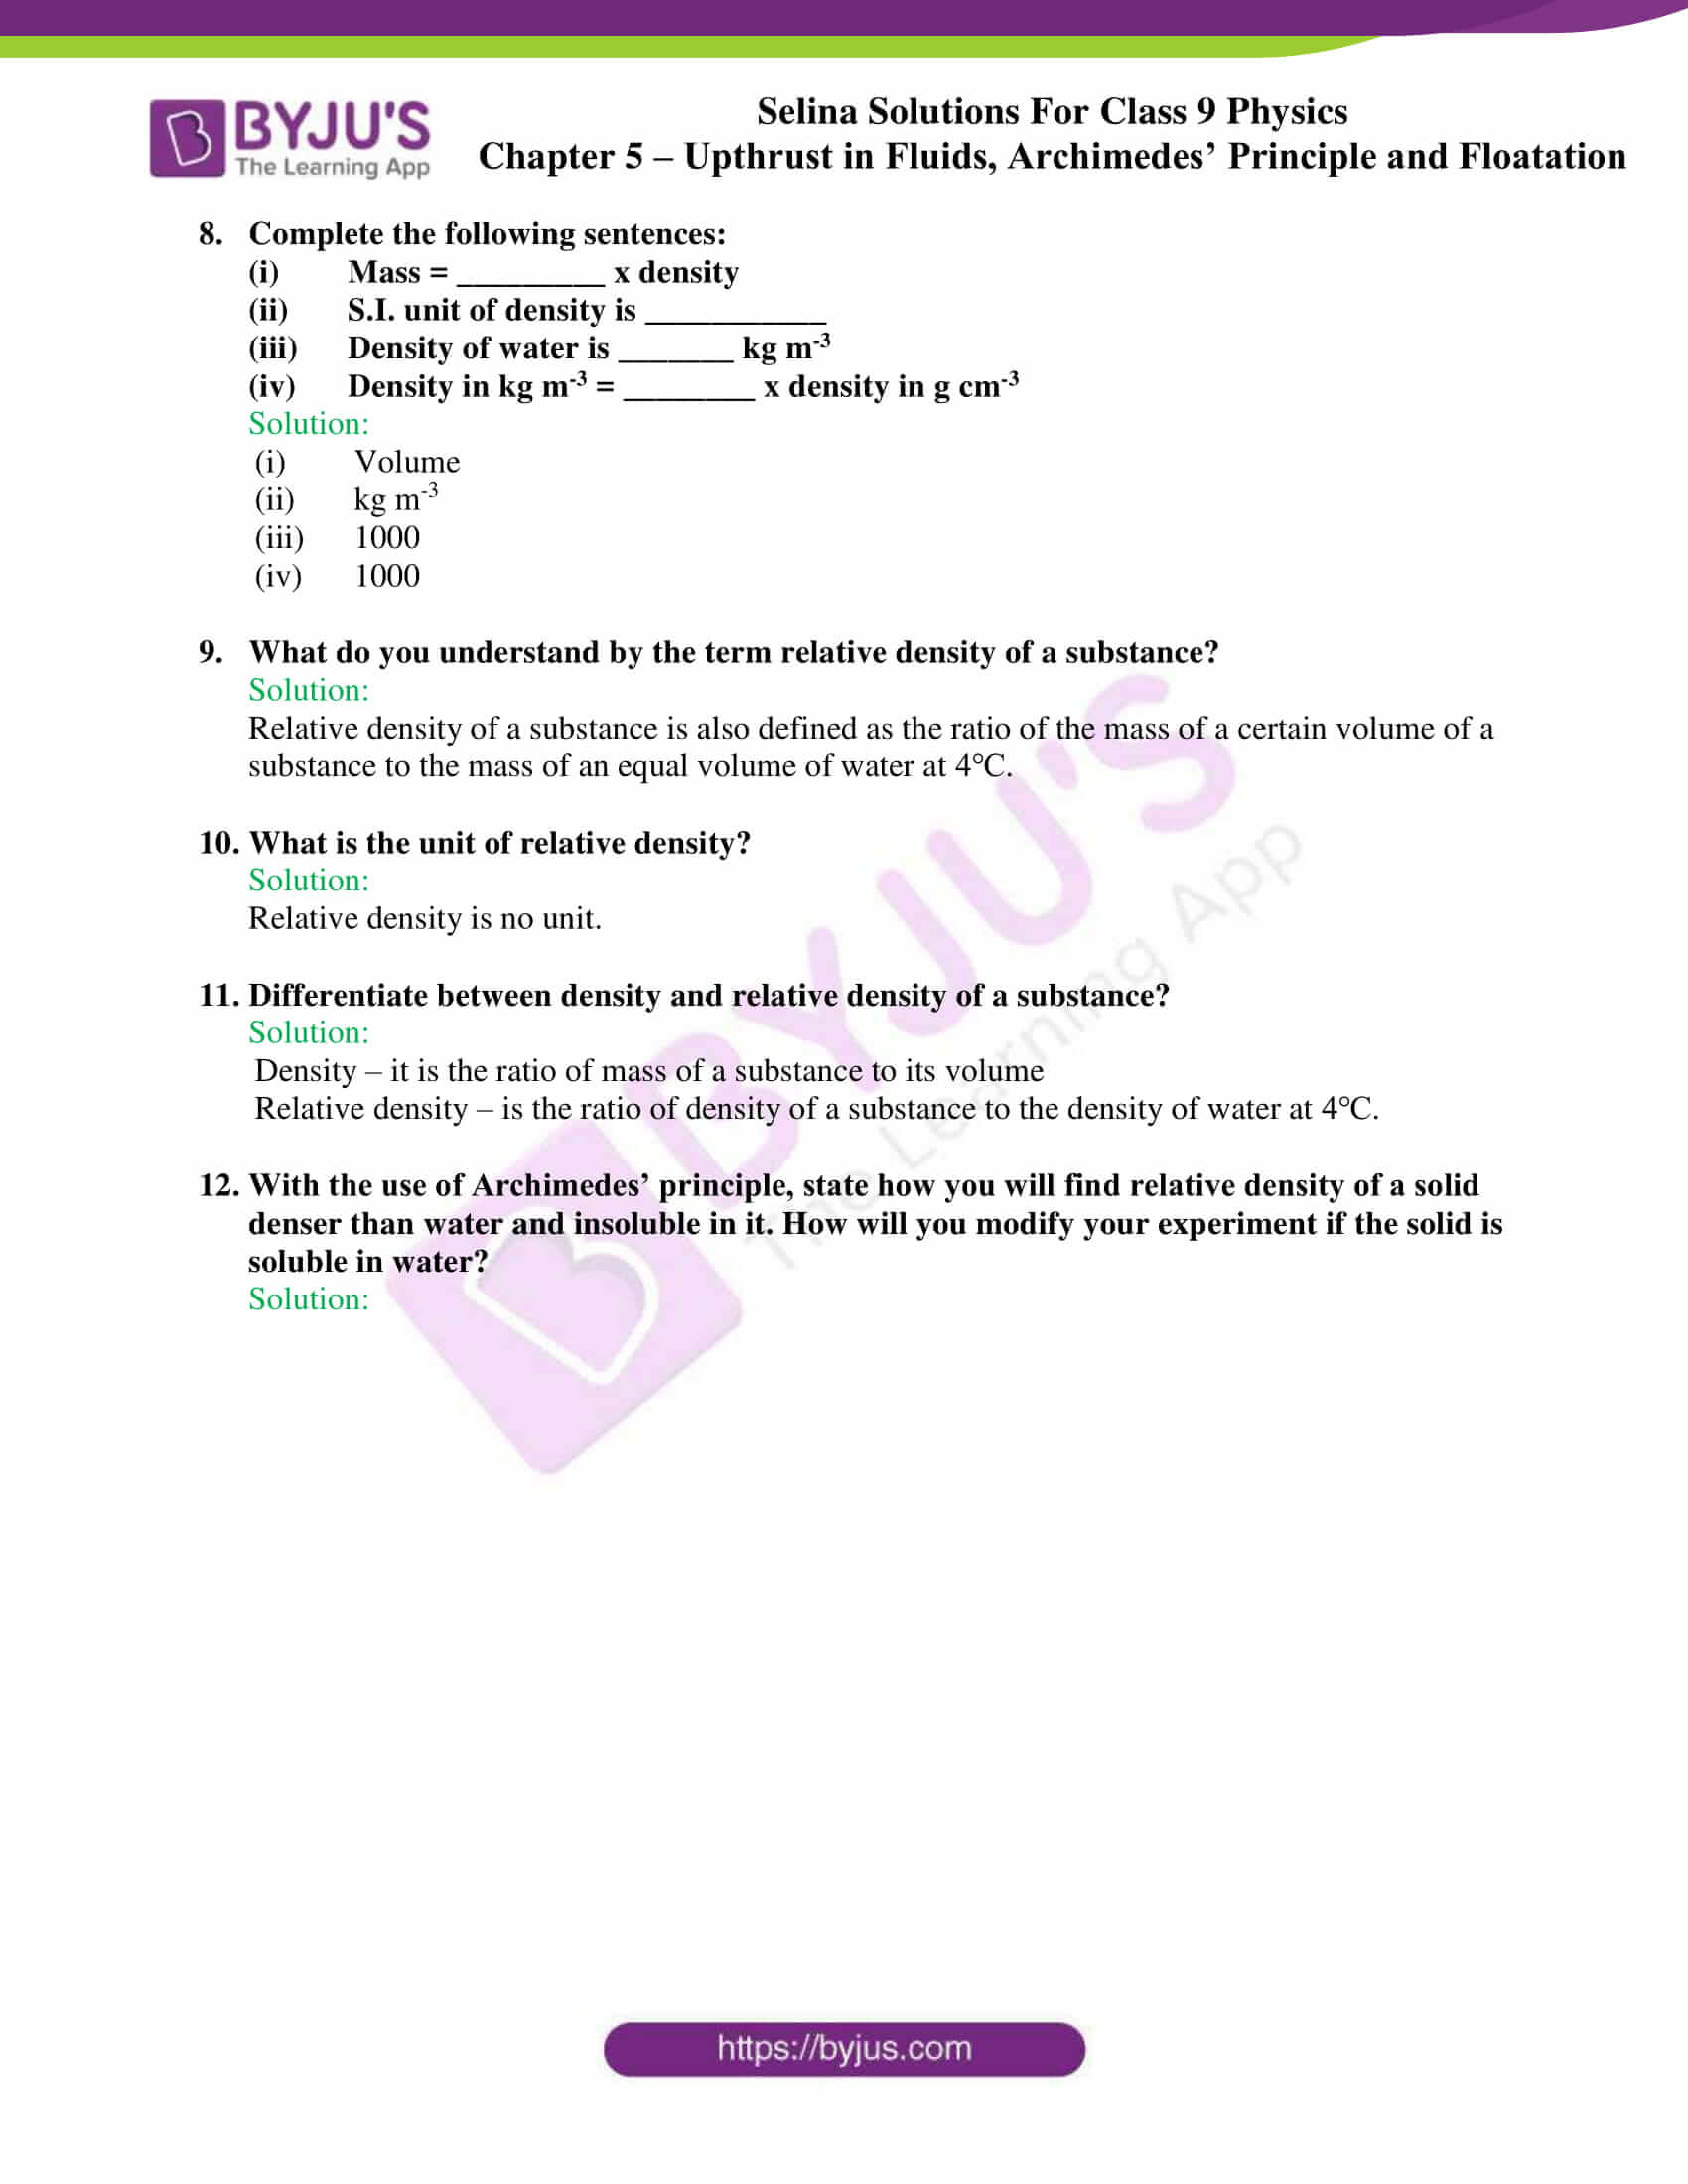 selina solutions class 9 physics chapter 5 part 15